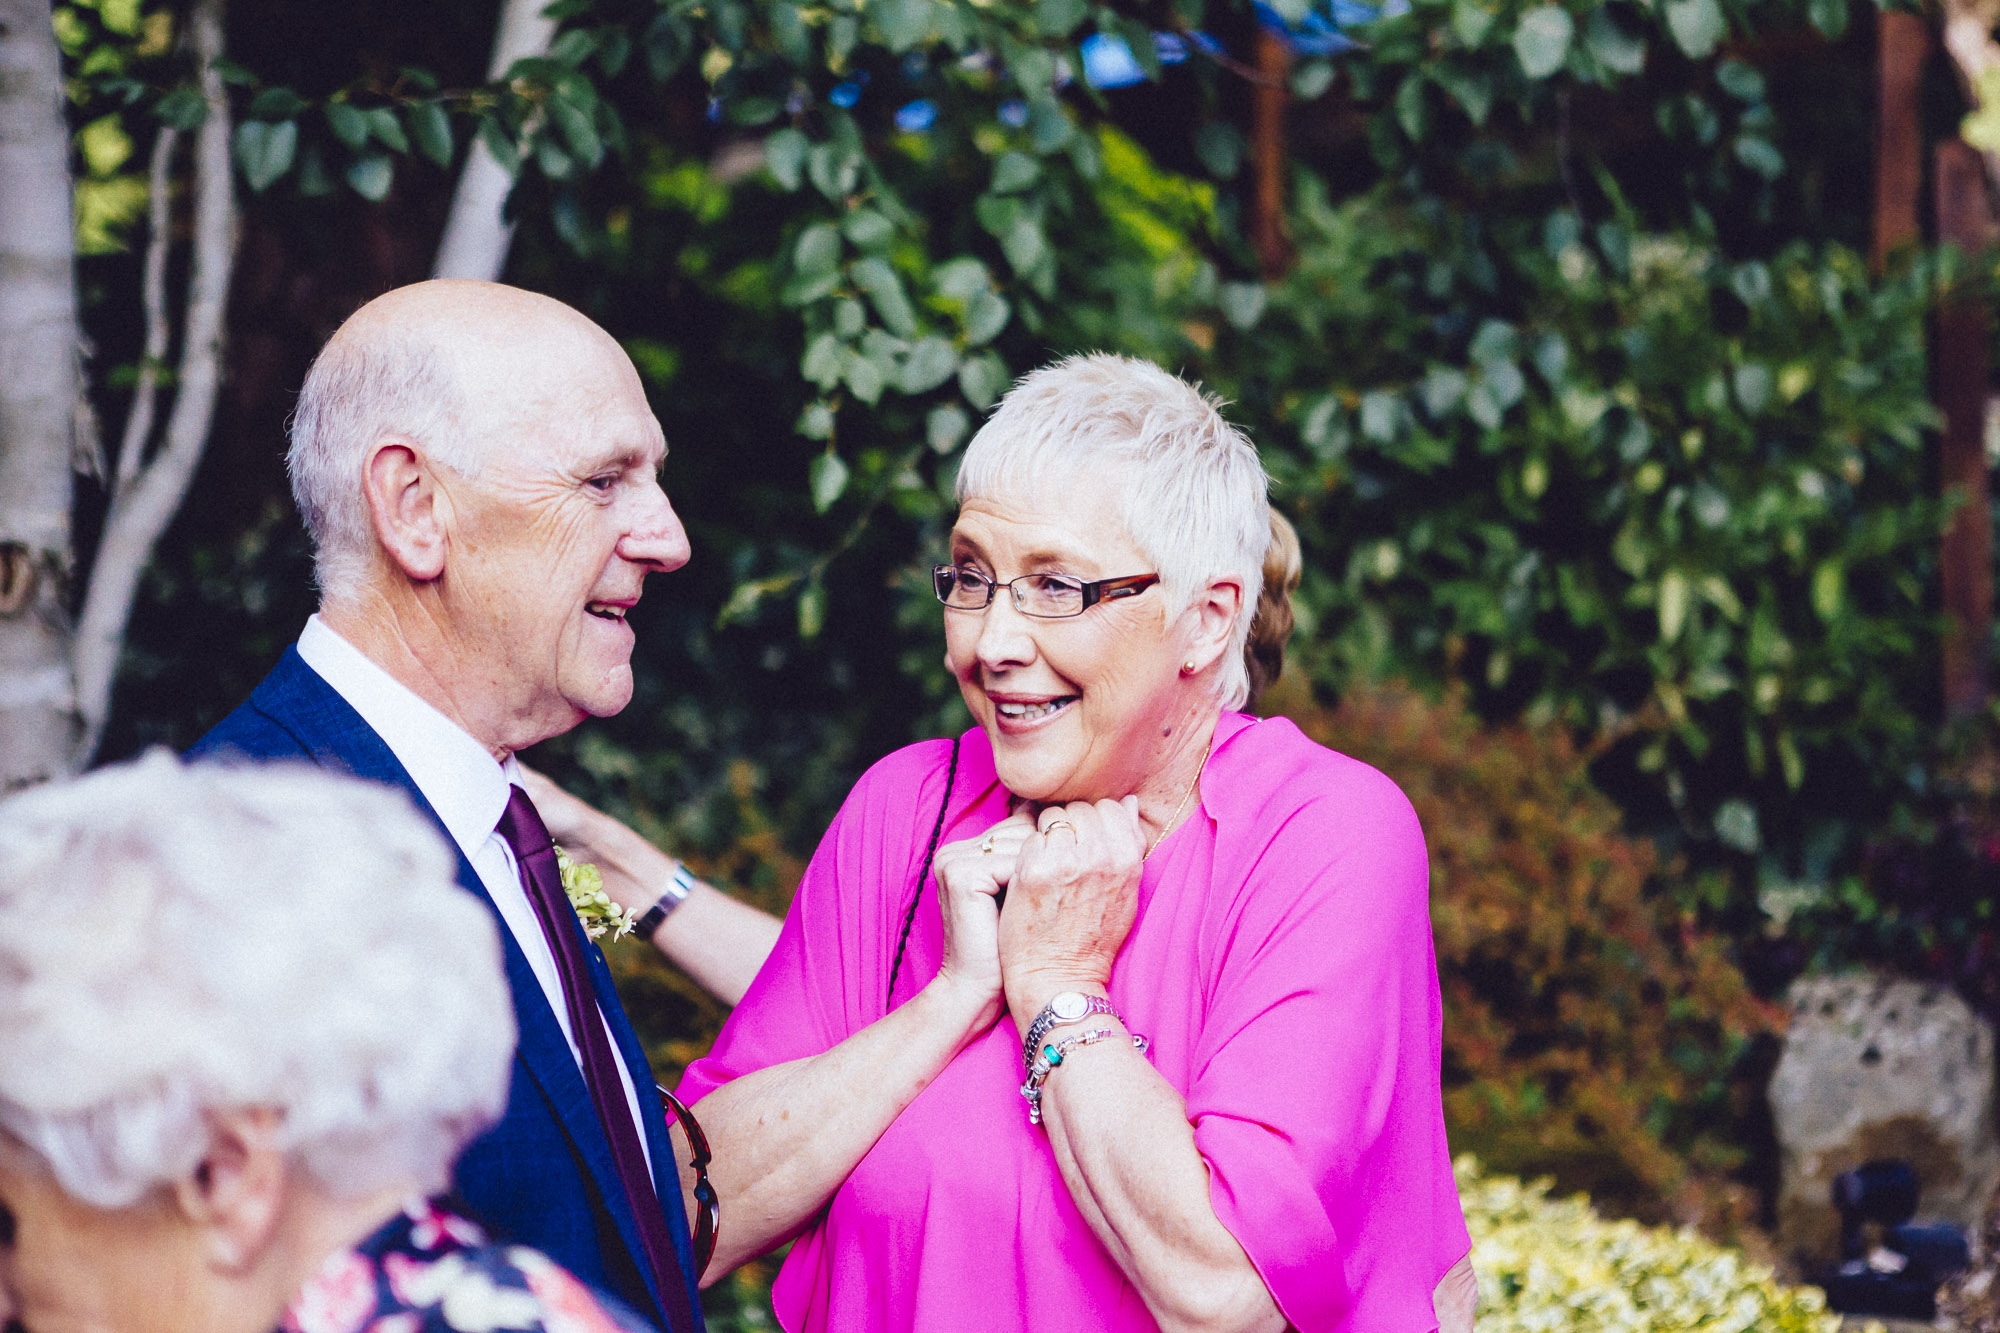 vibrant relaxed vibrant cotswold wedding-69.jpg